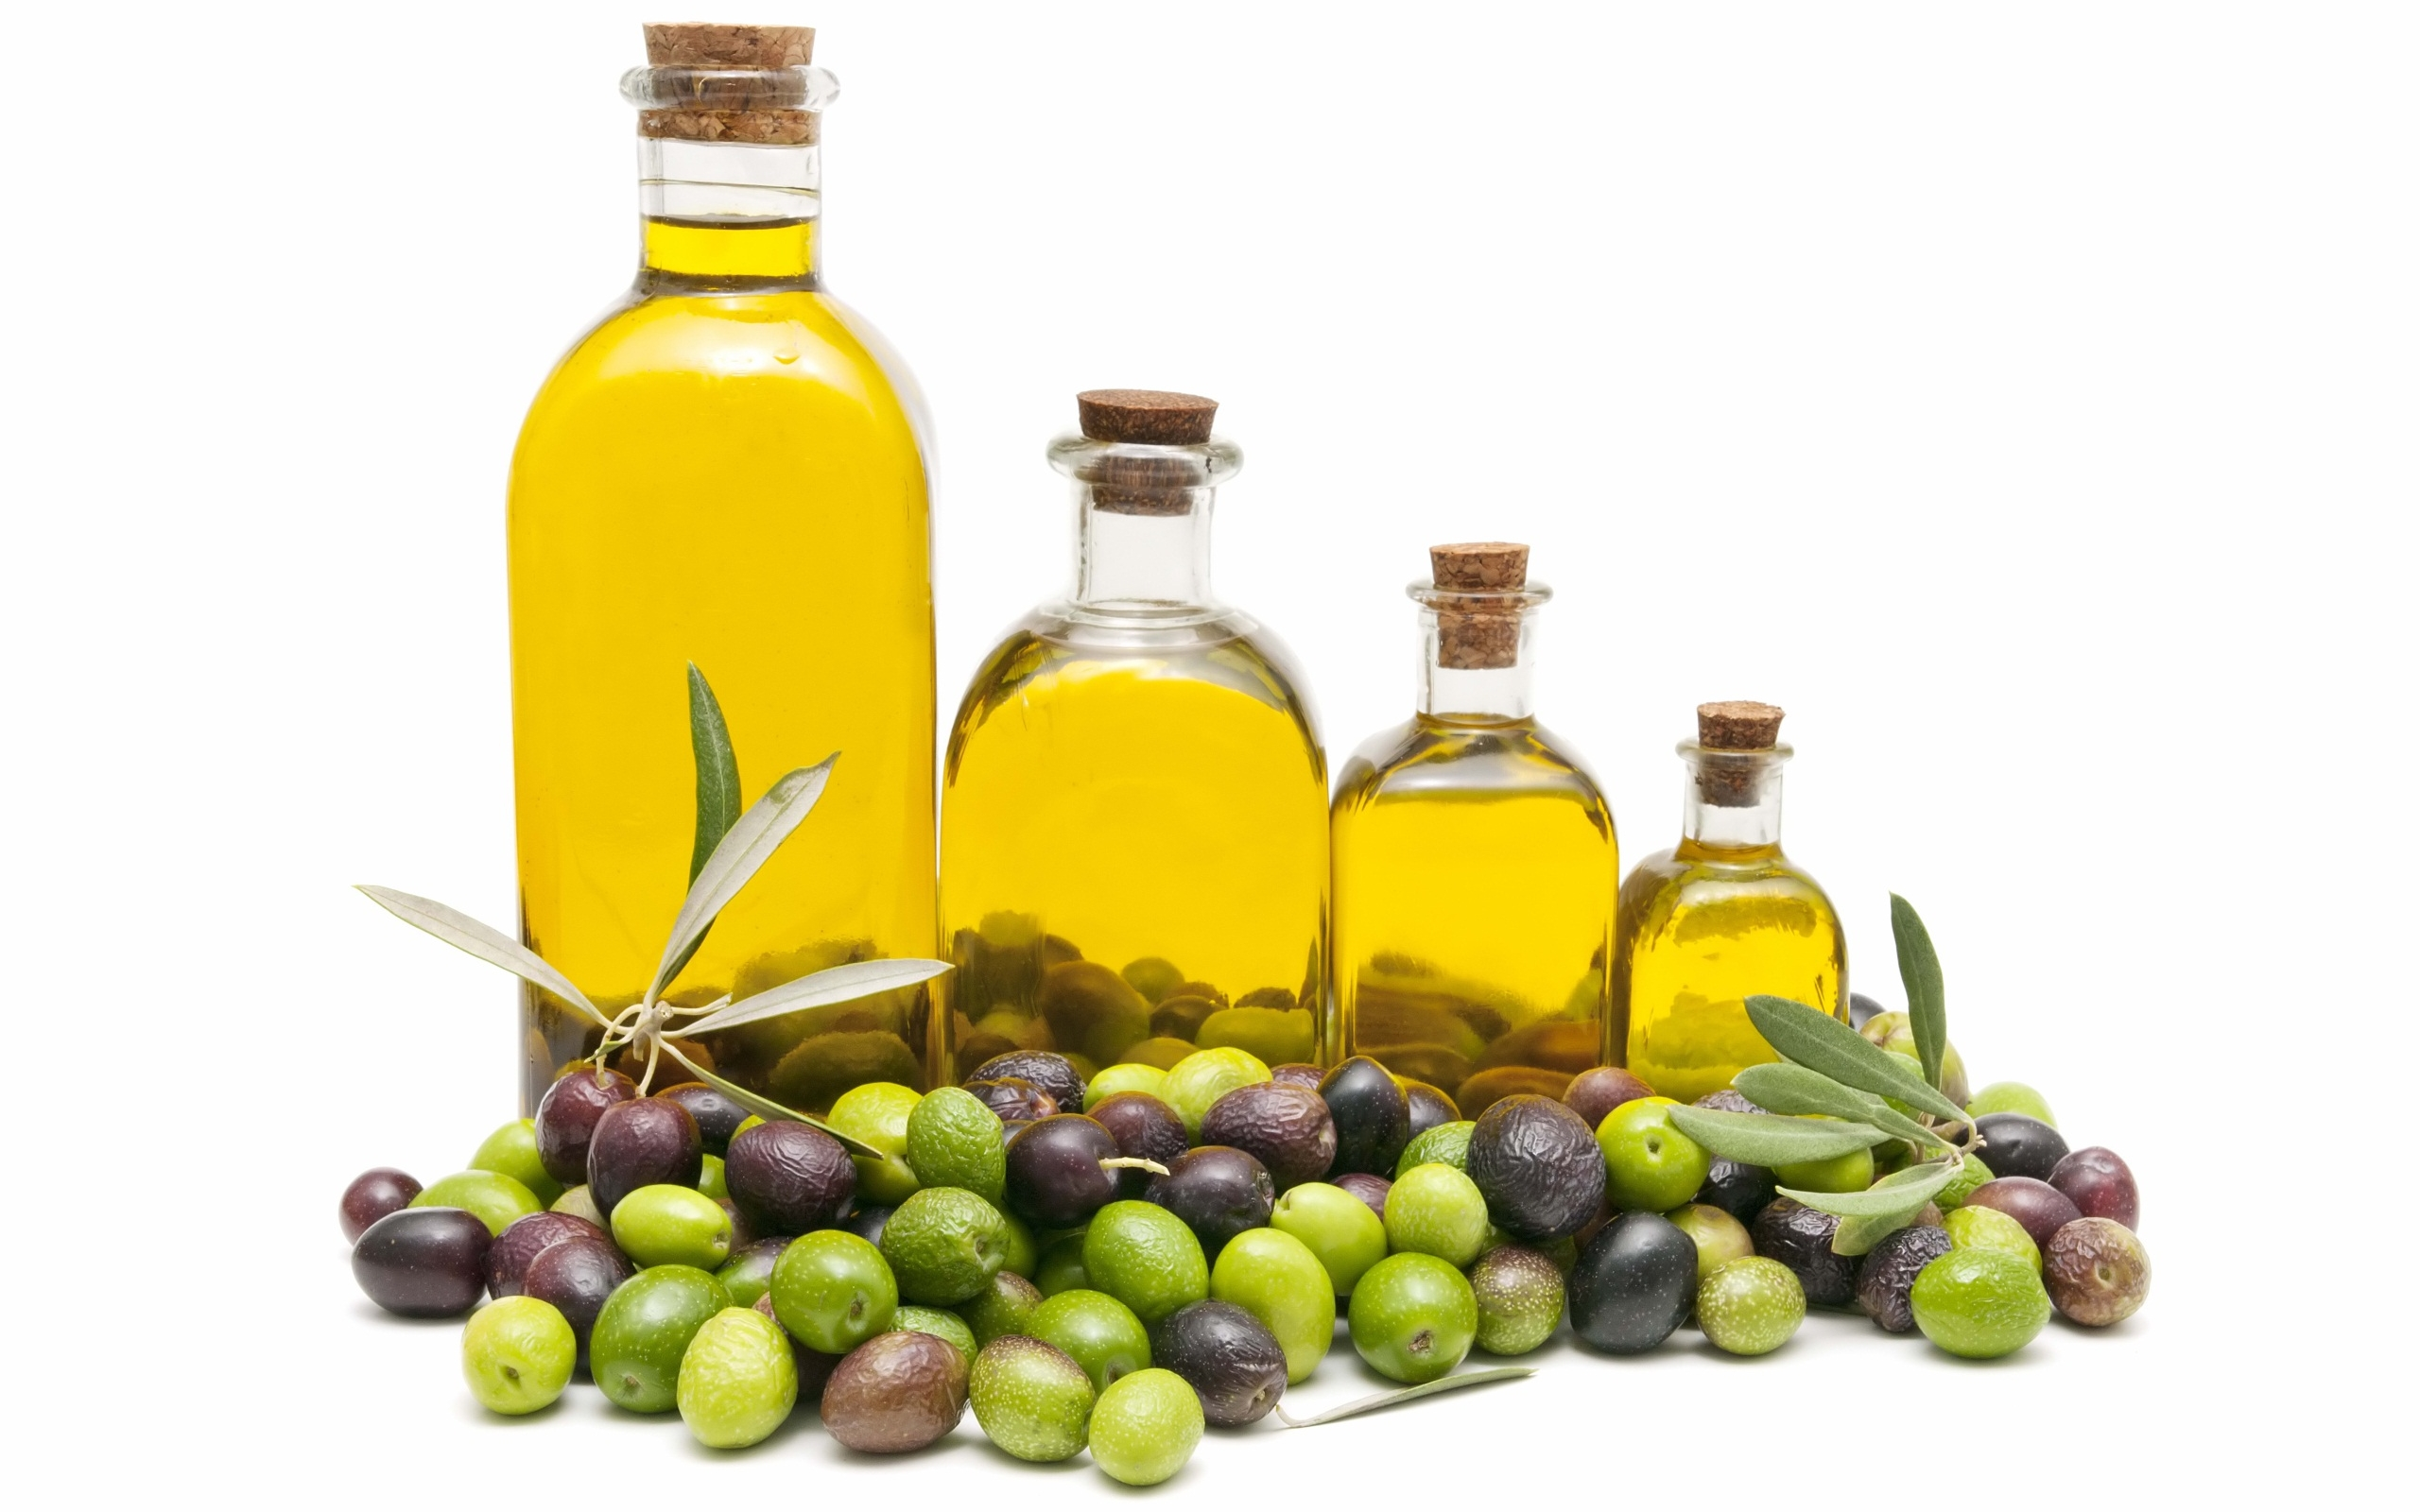 Olive oil does not make us put on weight